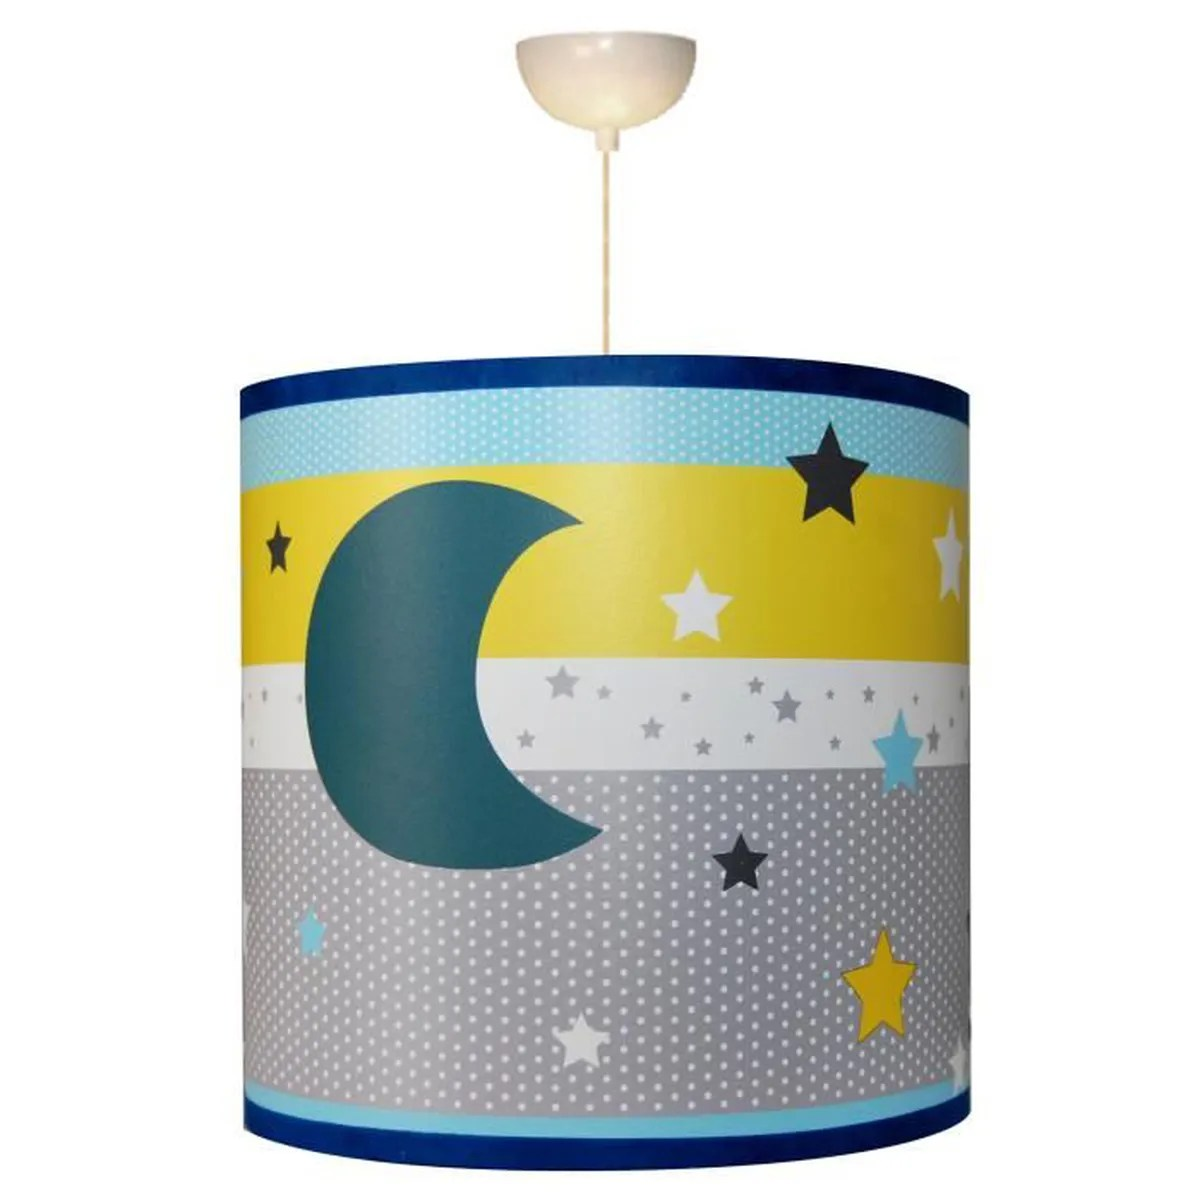 Lampe Suspension Enfant Suspension Enfant Suspension Luminaire Enfant Hibou